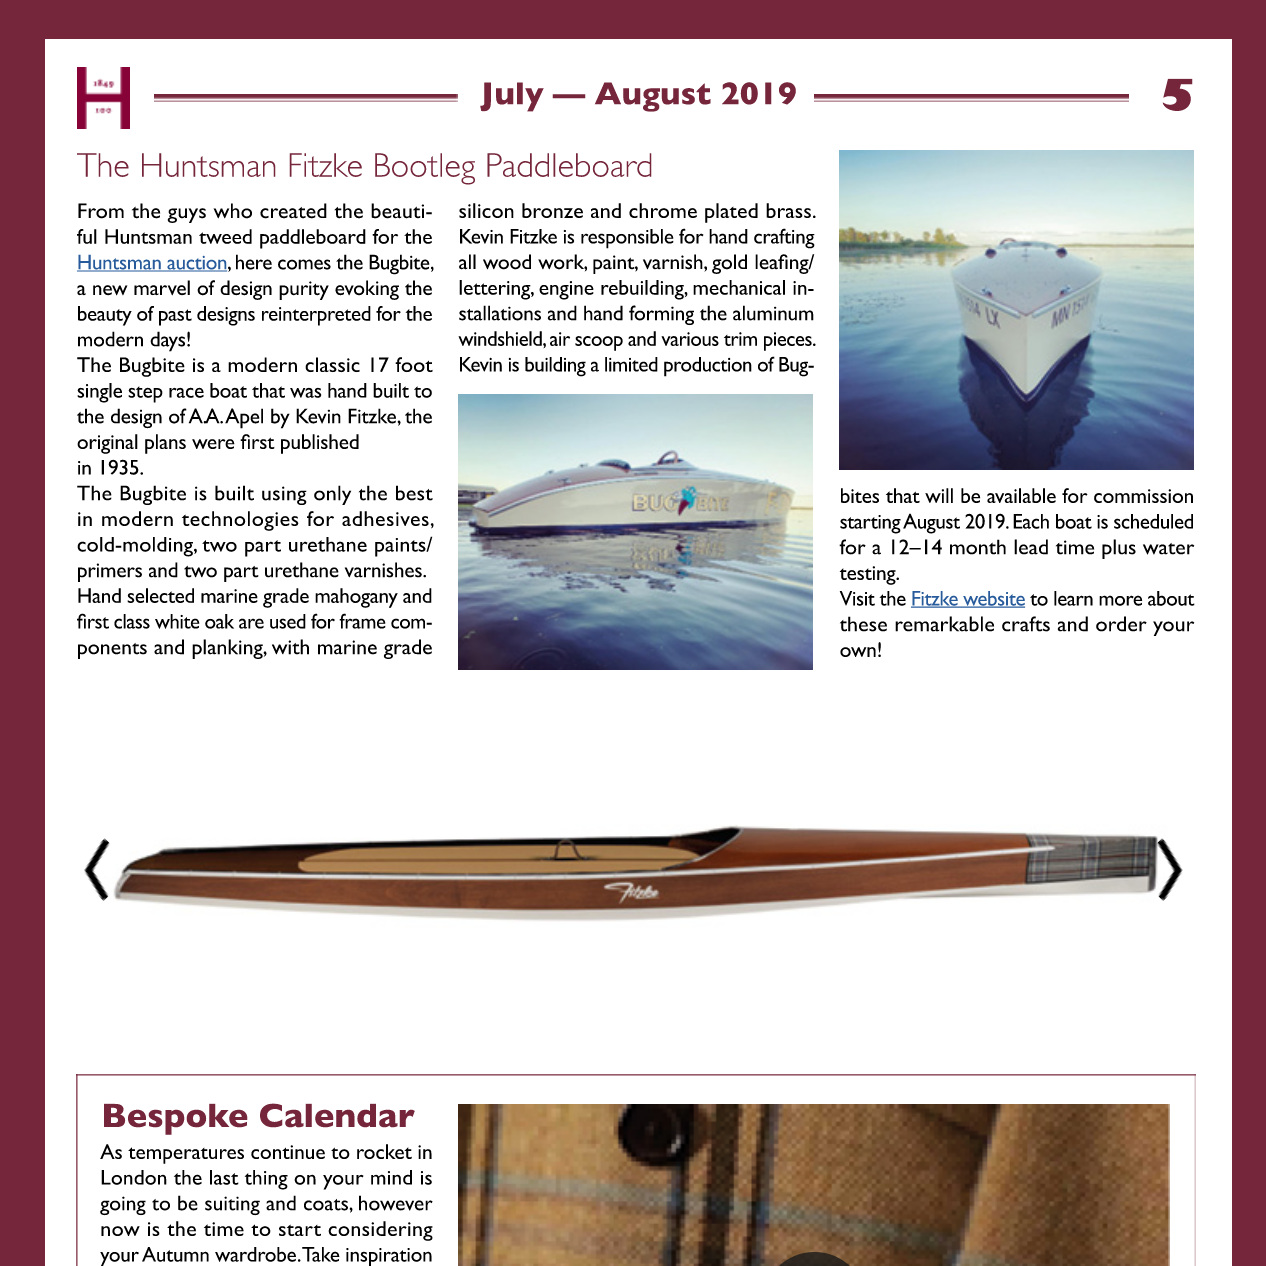 August 2019 Gazette Feature - Hunstman Saville Row Tailors